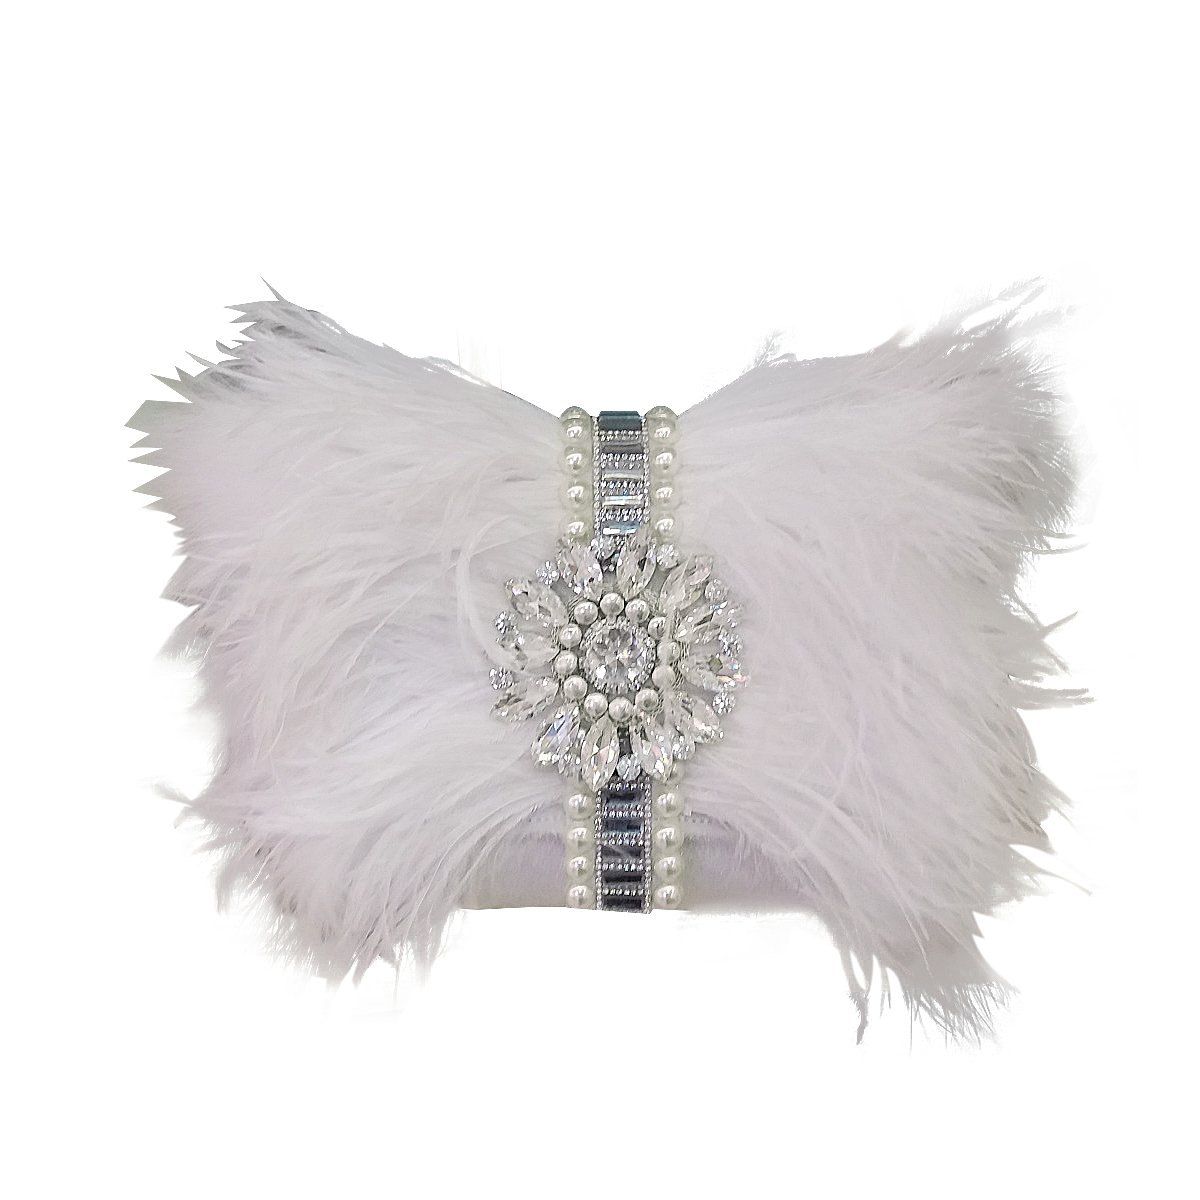 Zakia Real Natural Ostrich Feather Crystal Pearl Center Clutch Shoulder Bag for Wedding Party (white)